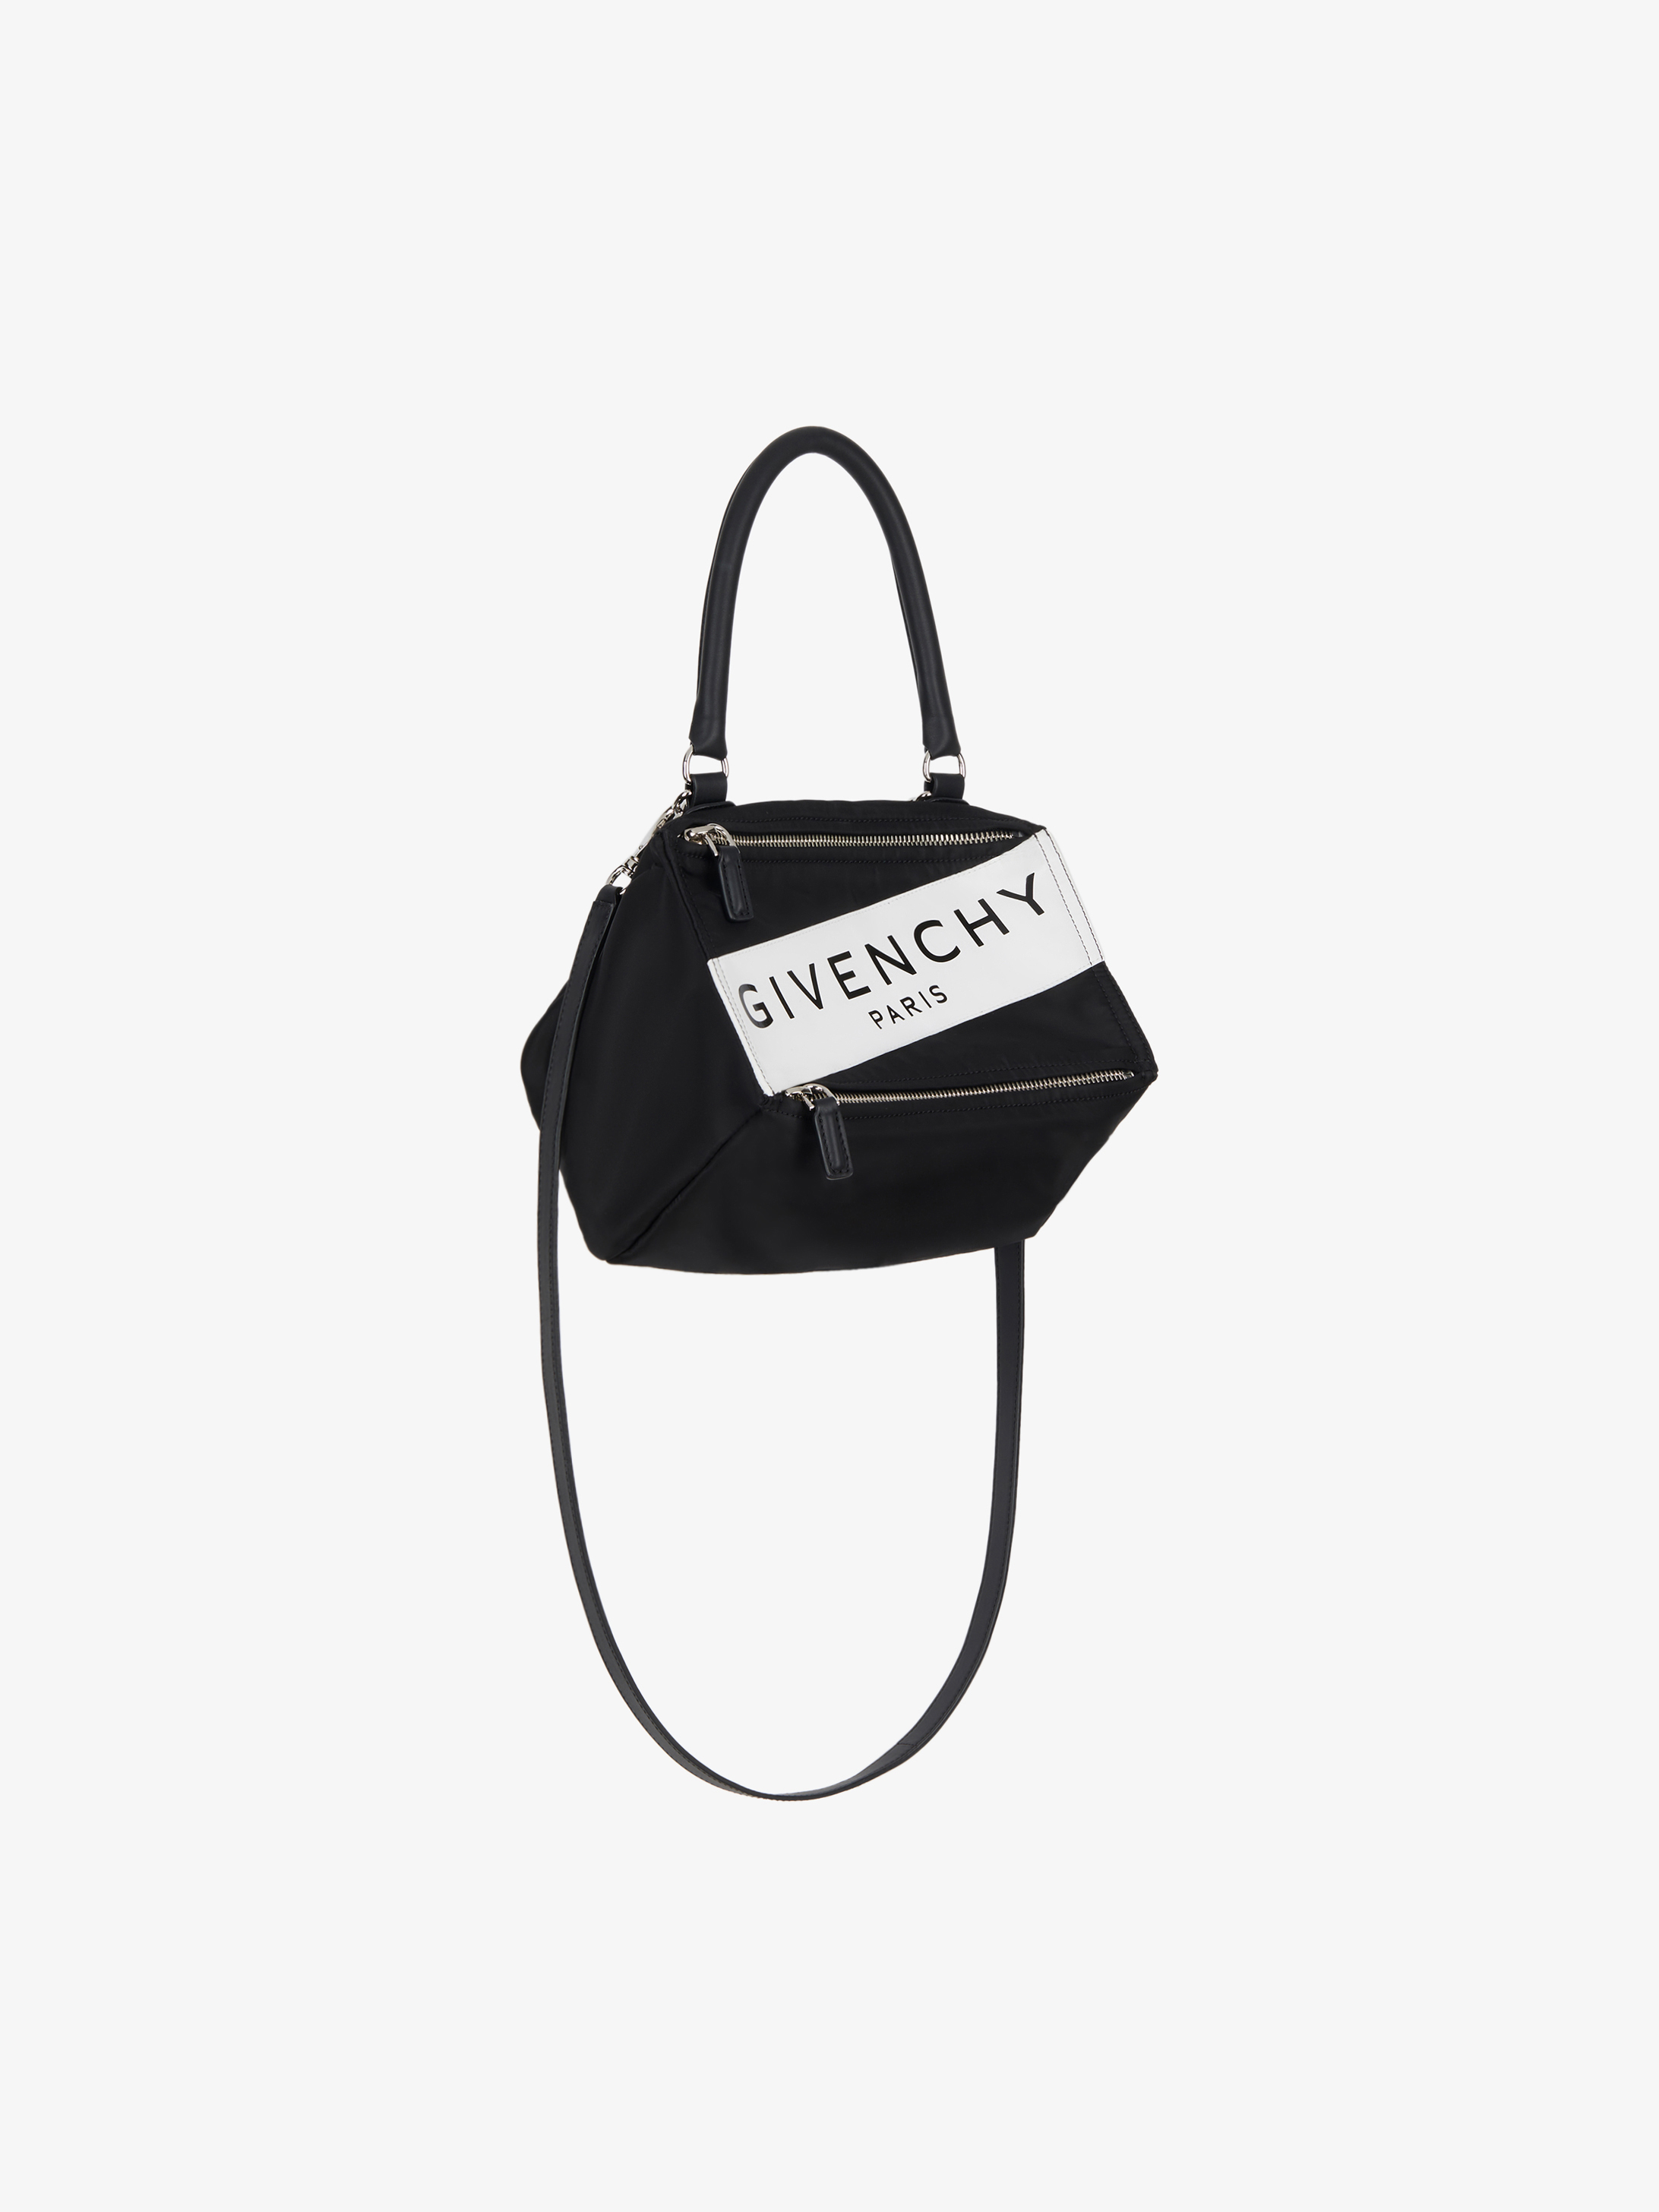 Givenchy Paris Band Small Pandora Bag In Nylon